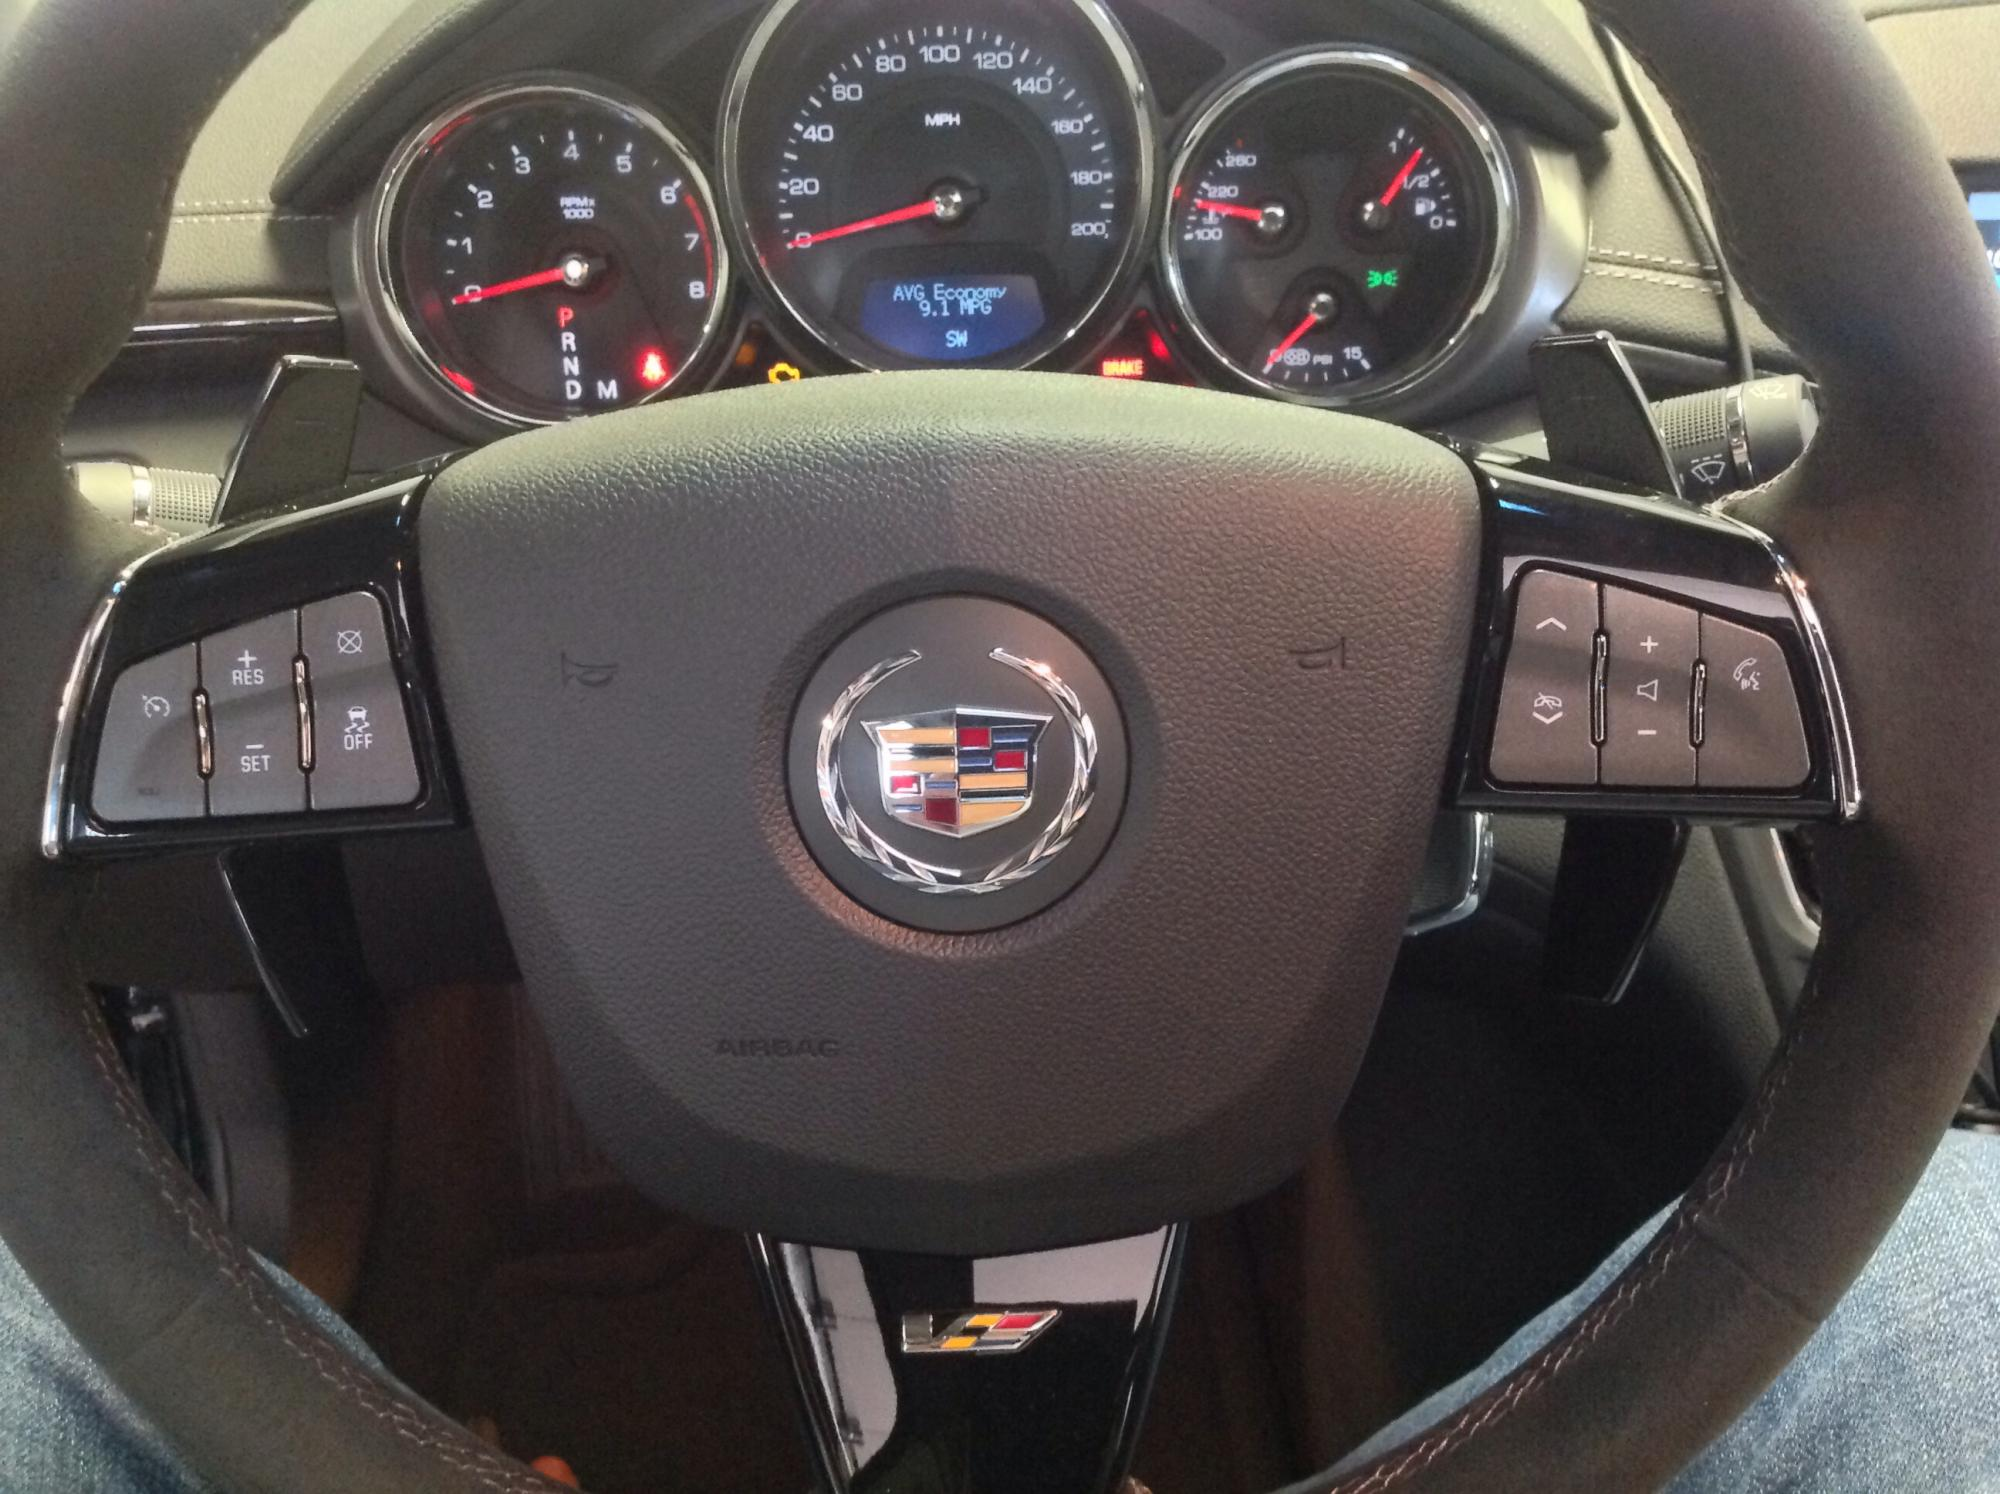 S2T Performance Cadillac CTS/CTS-V Paddle Shifter Group-Buy!-image.jpg